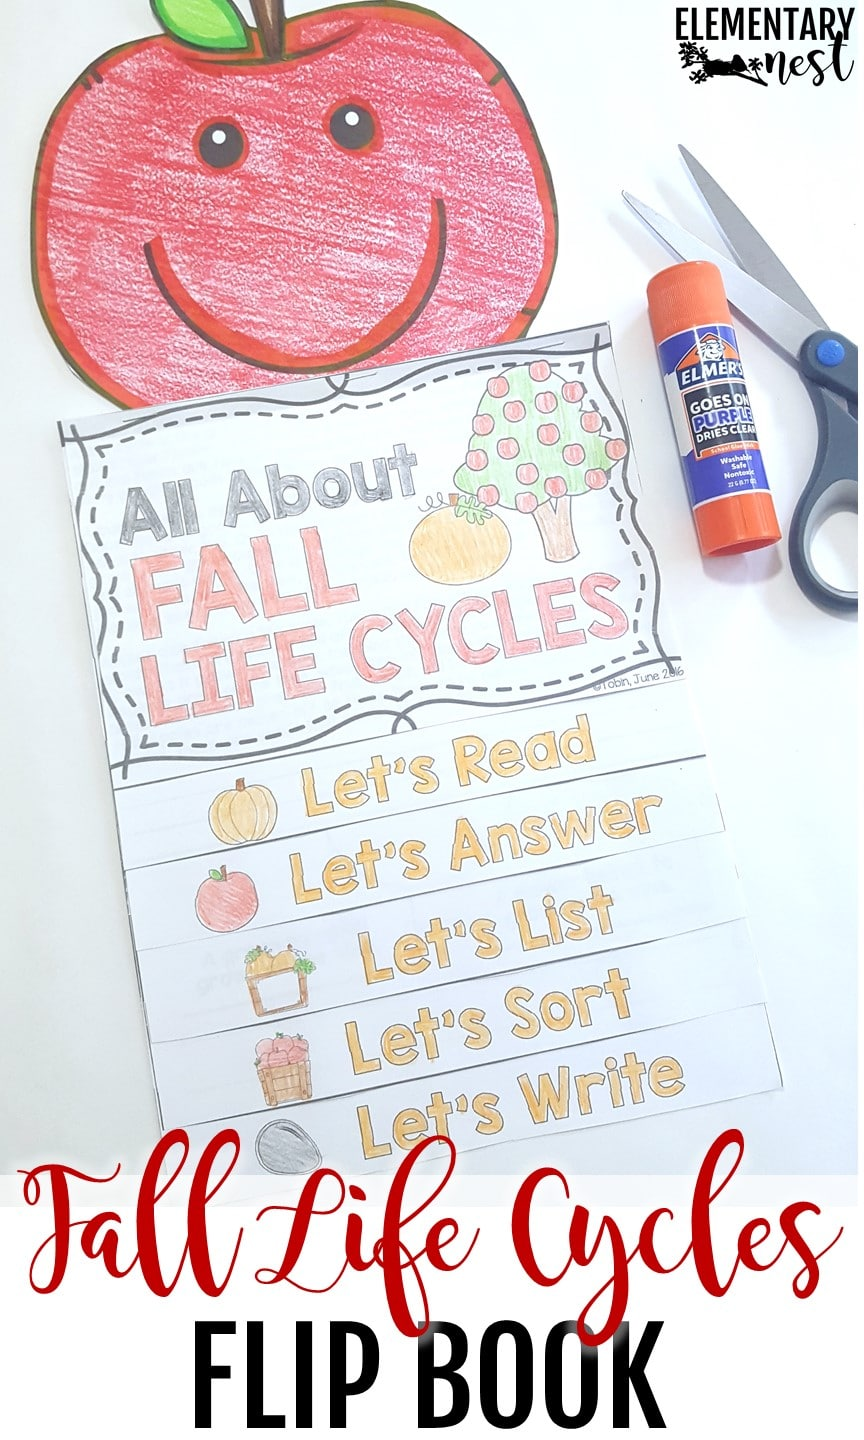 Apple life cycle reading flip book.